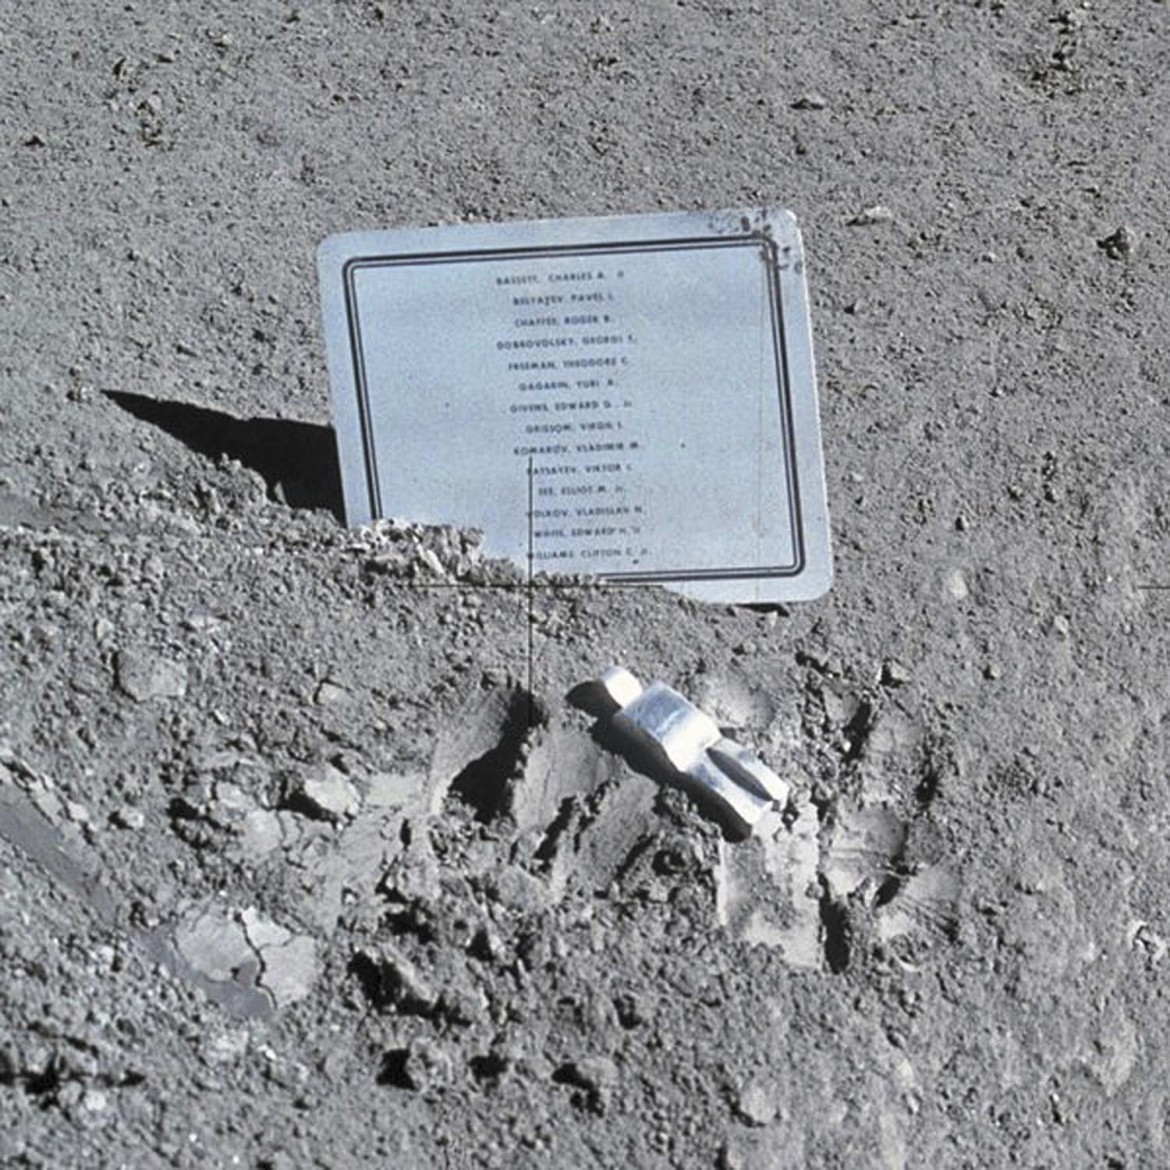 In 1971, Apollo 15 astronauts placed a plaque on the moon listing those who died in the space race. At the bottom is Mobile native Cliffton C. WIlliams.